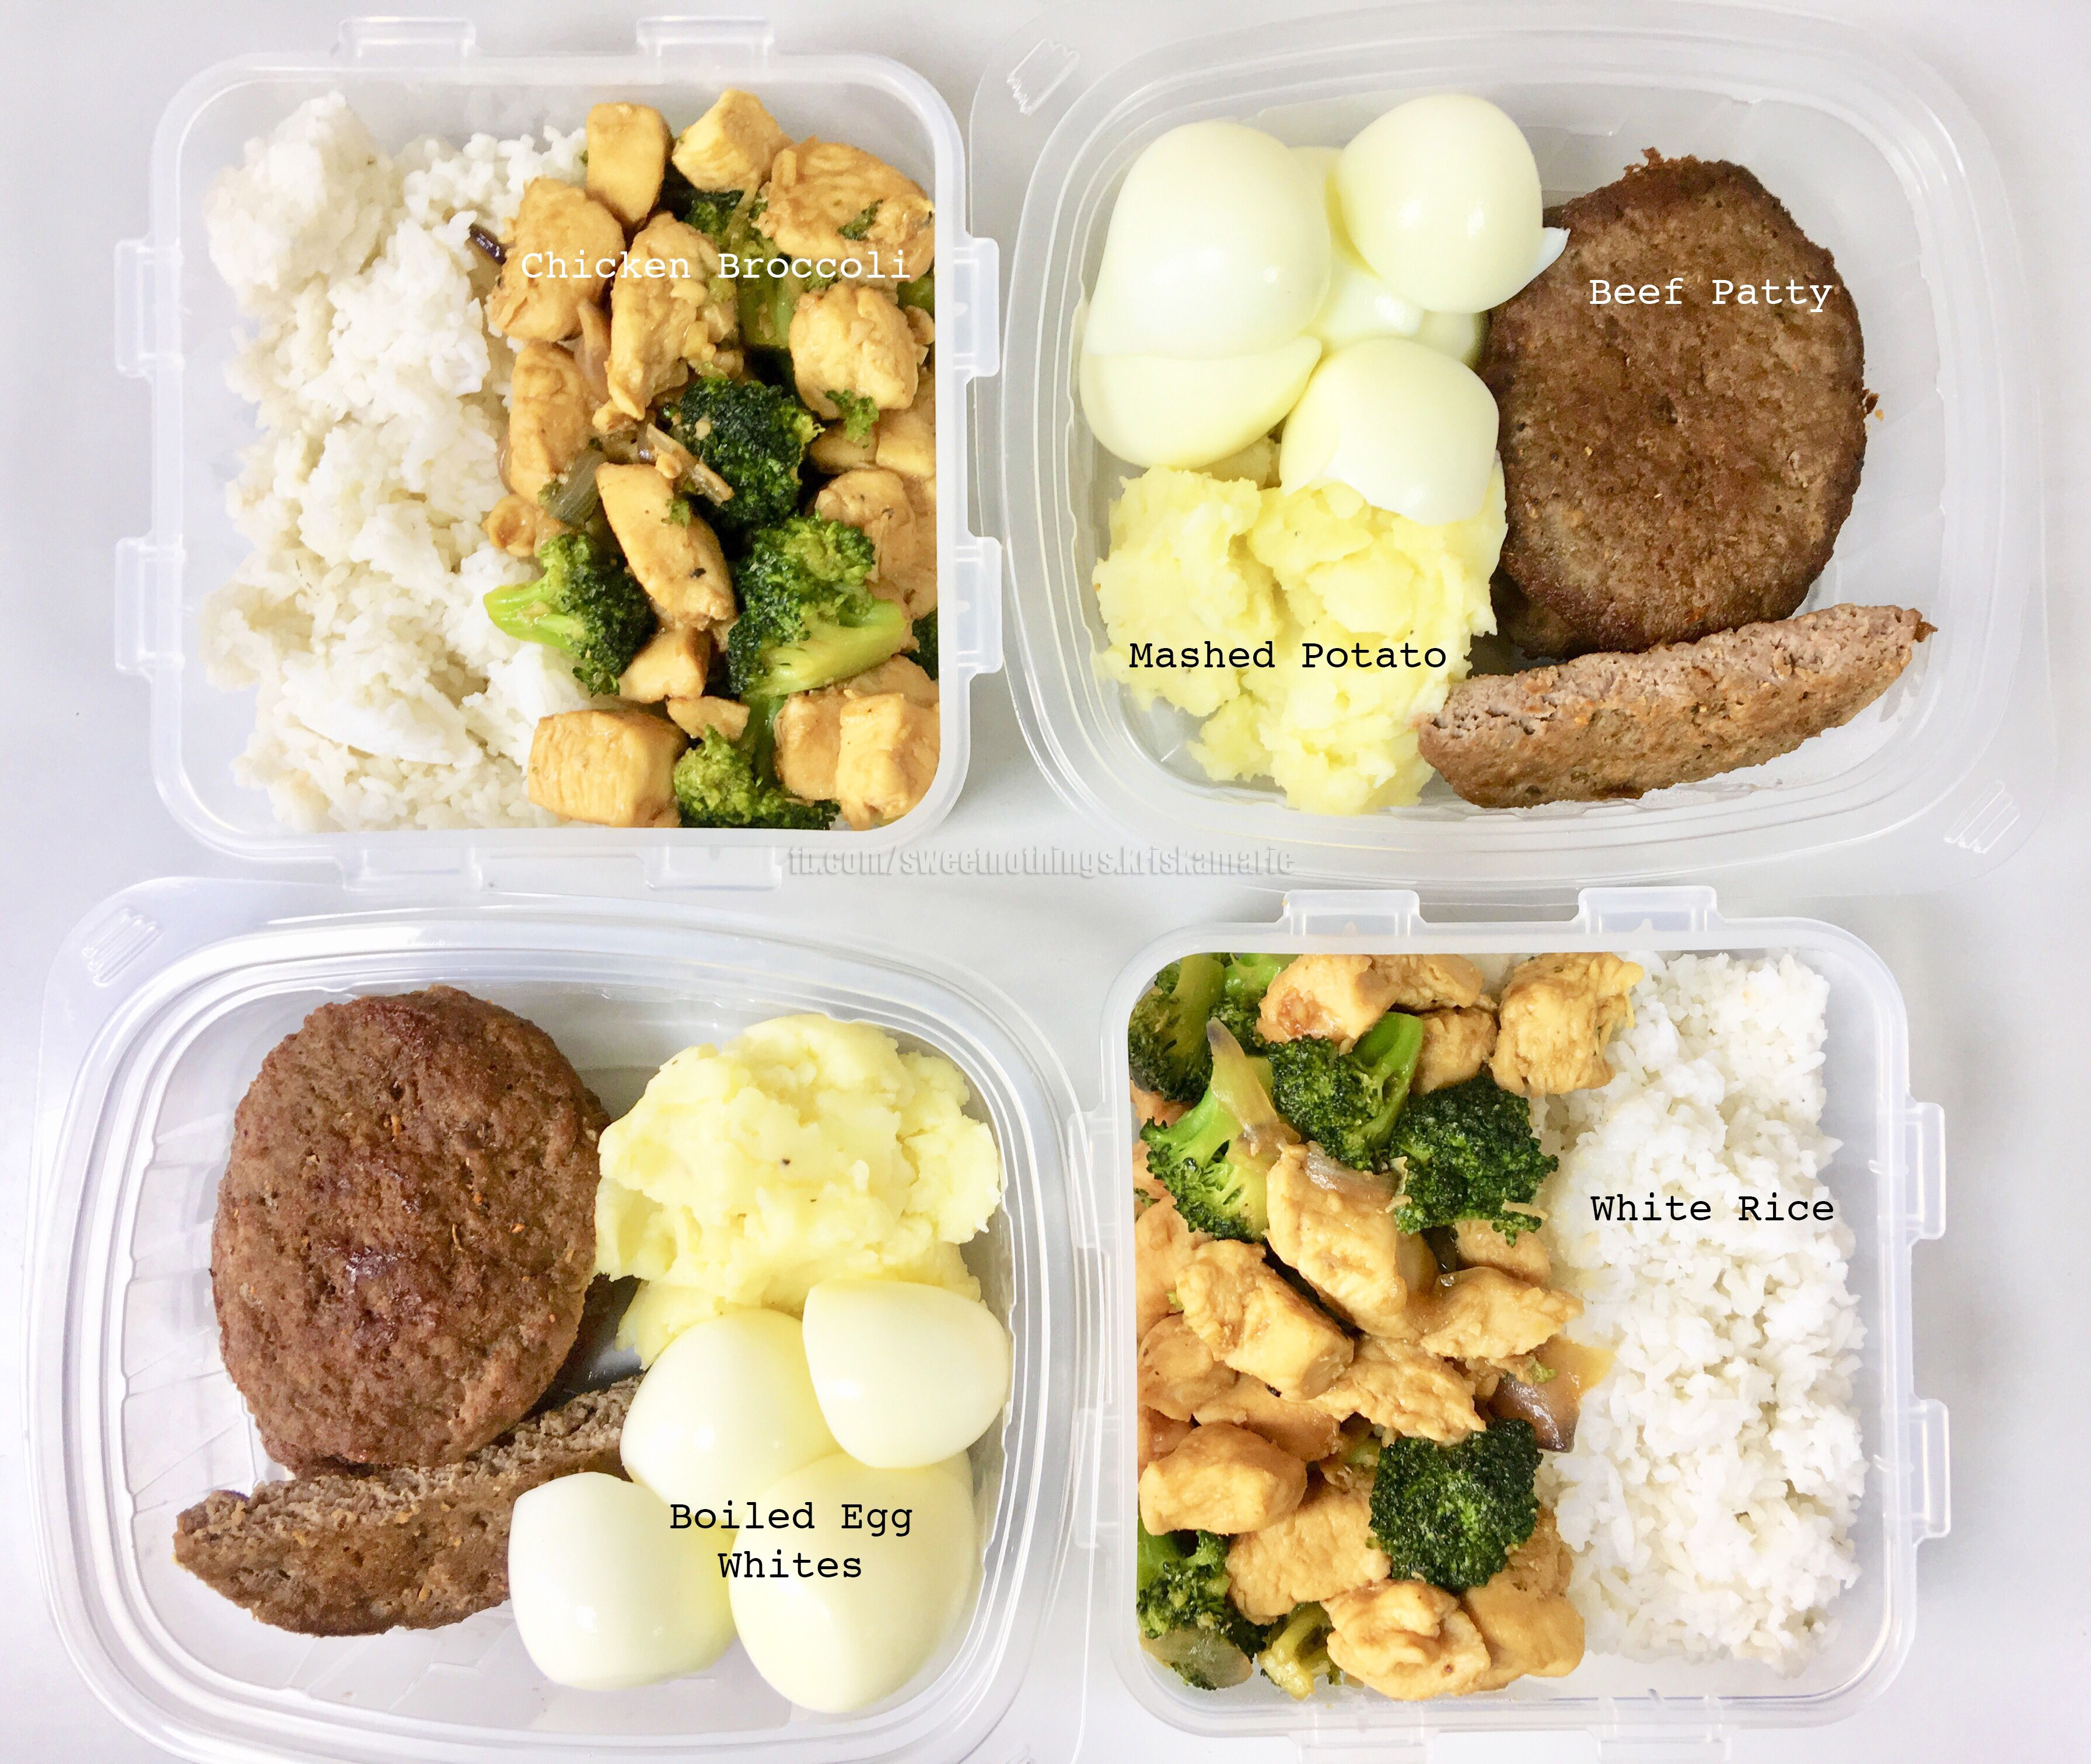 Meal Prep Ideas: Chicken & Rice, Beef & Mashed Potato | Meal prep, Beef  patty, Mashed potatoes